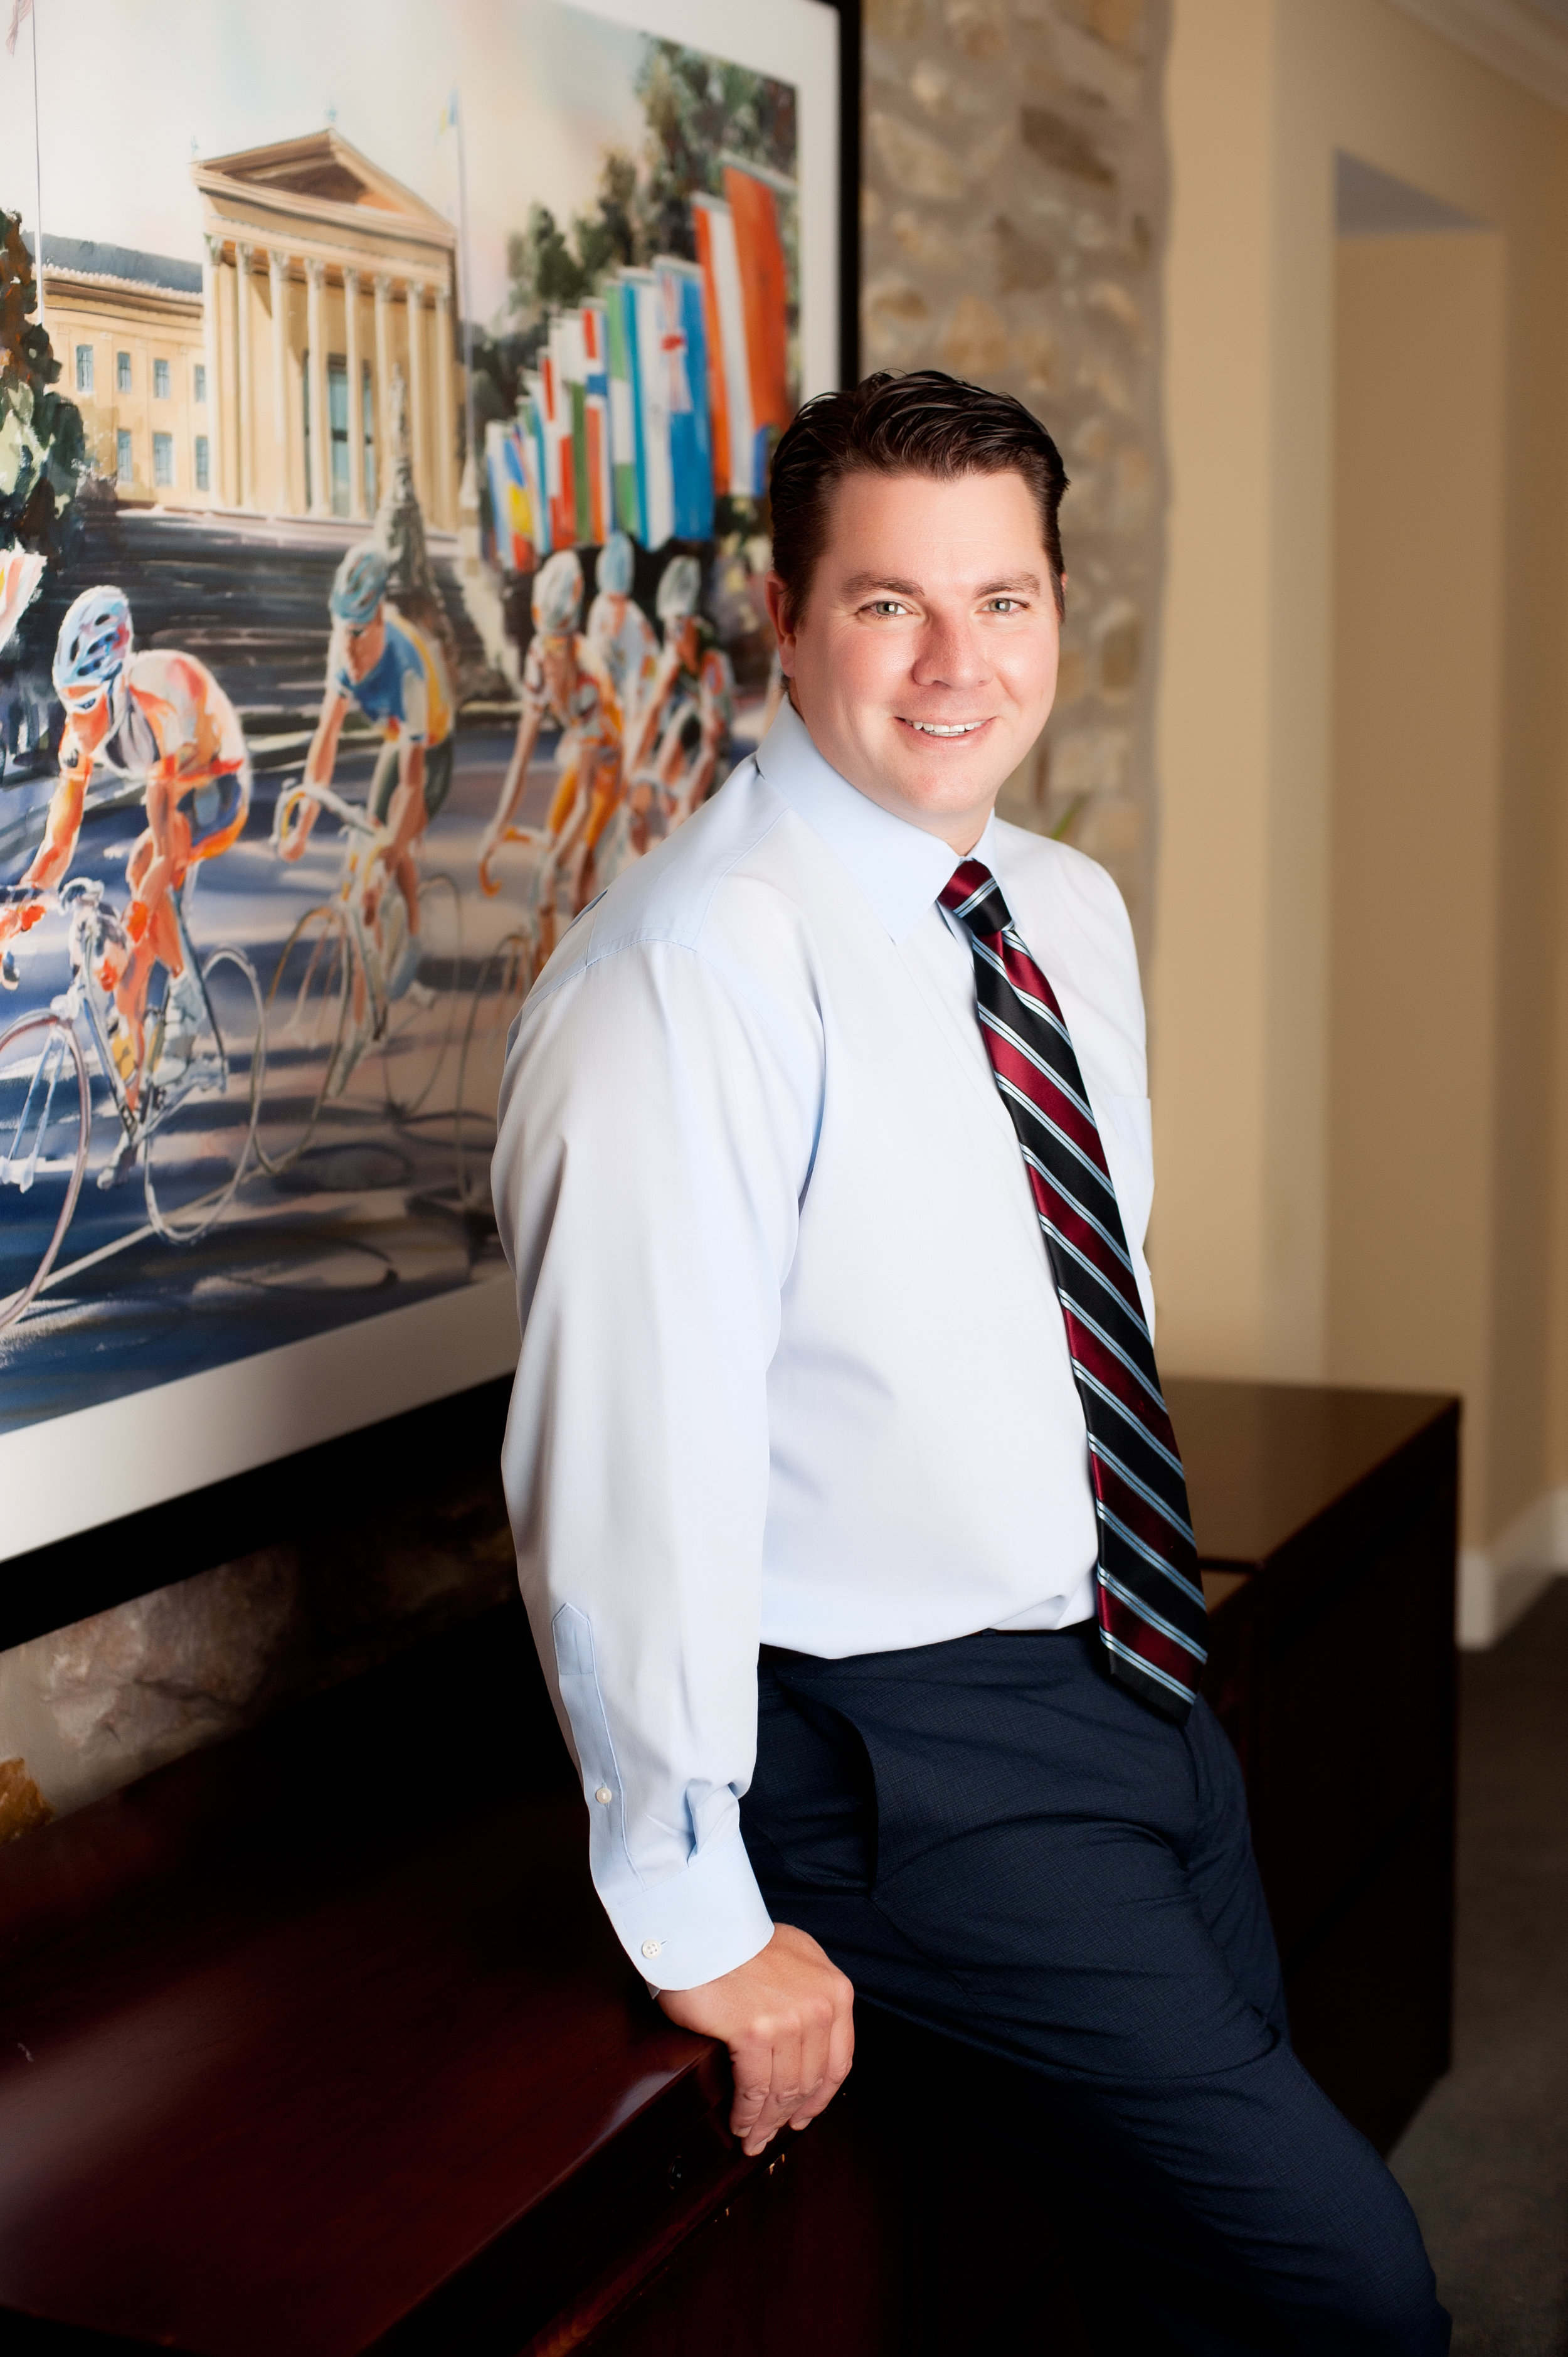 Mike Gulbinski - Mike has been part of the Marathon Mortgage family since 2004. He is a 1996 graduate of Rider University. As a Mortgage Consultant, Mike's role is to originate loans through the realtionships he has developed with Realtors as well as past clients. Flexiblity and understanding are the strengths that make Mike a superior Loan Officer. Yet, he prides himself on the level of service he provides his clients.Mike has received numerous awards for his service in the business, as noted in Philadelphia Magazine's